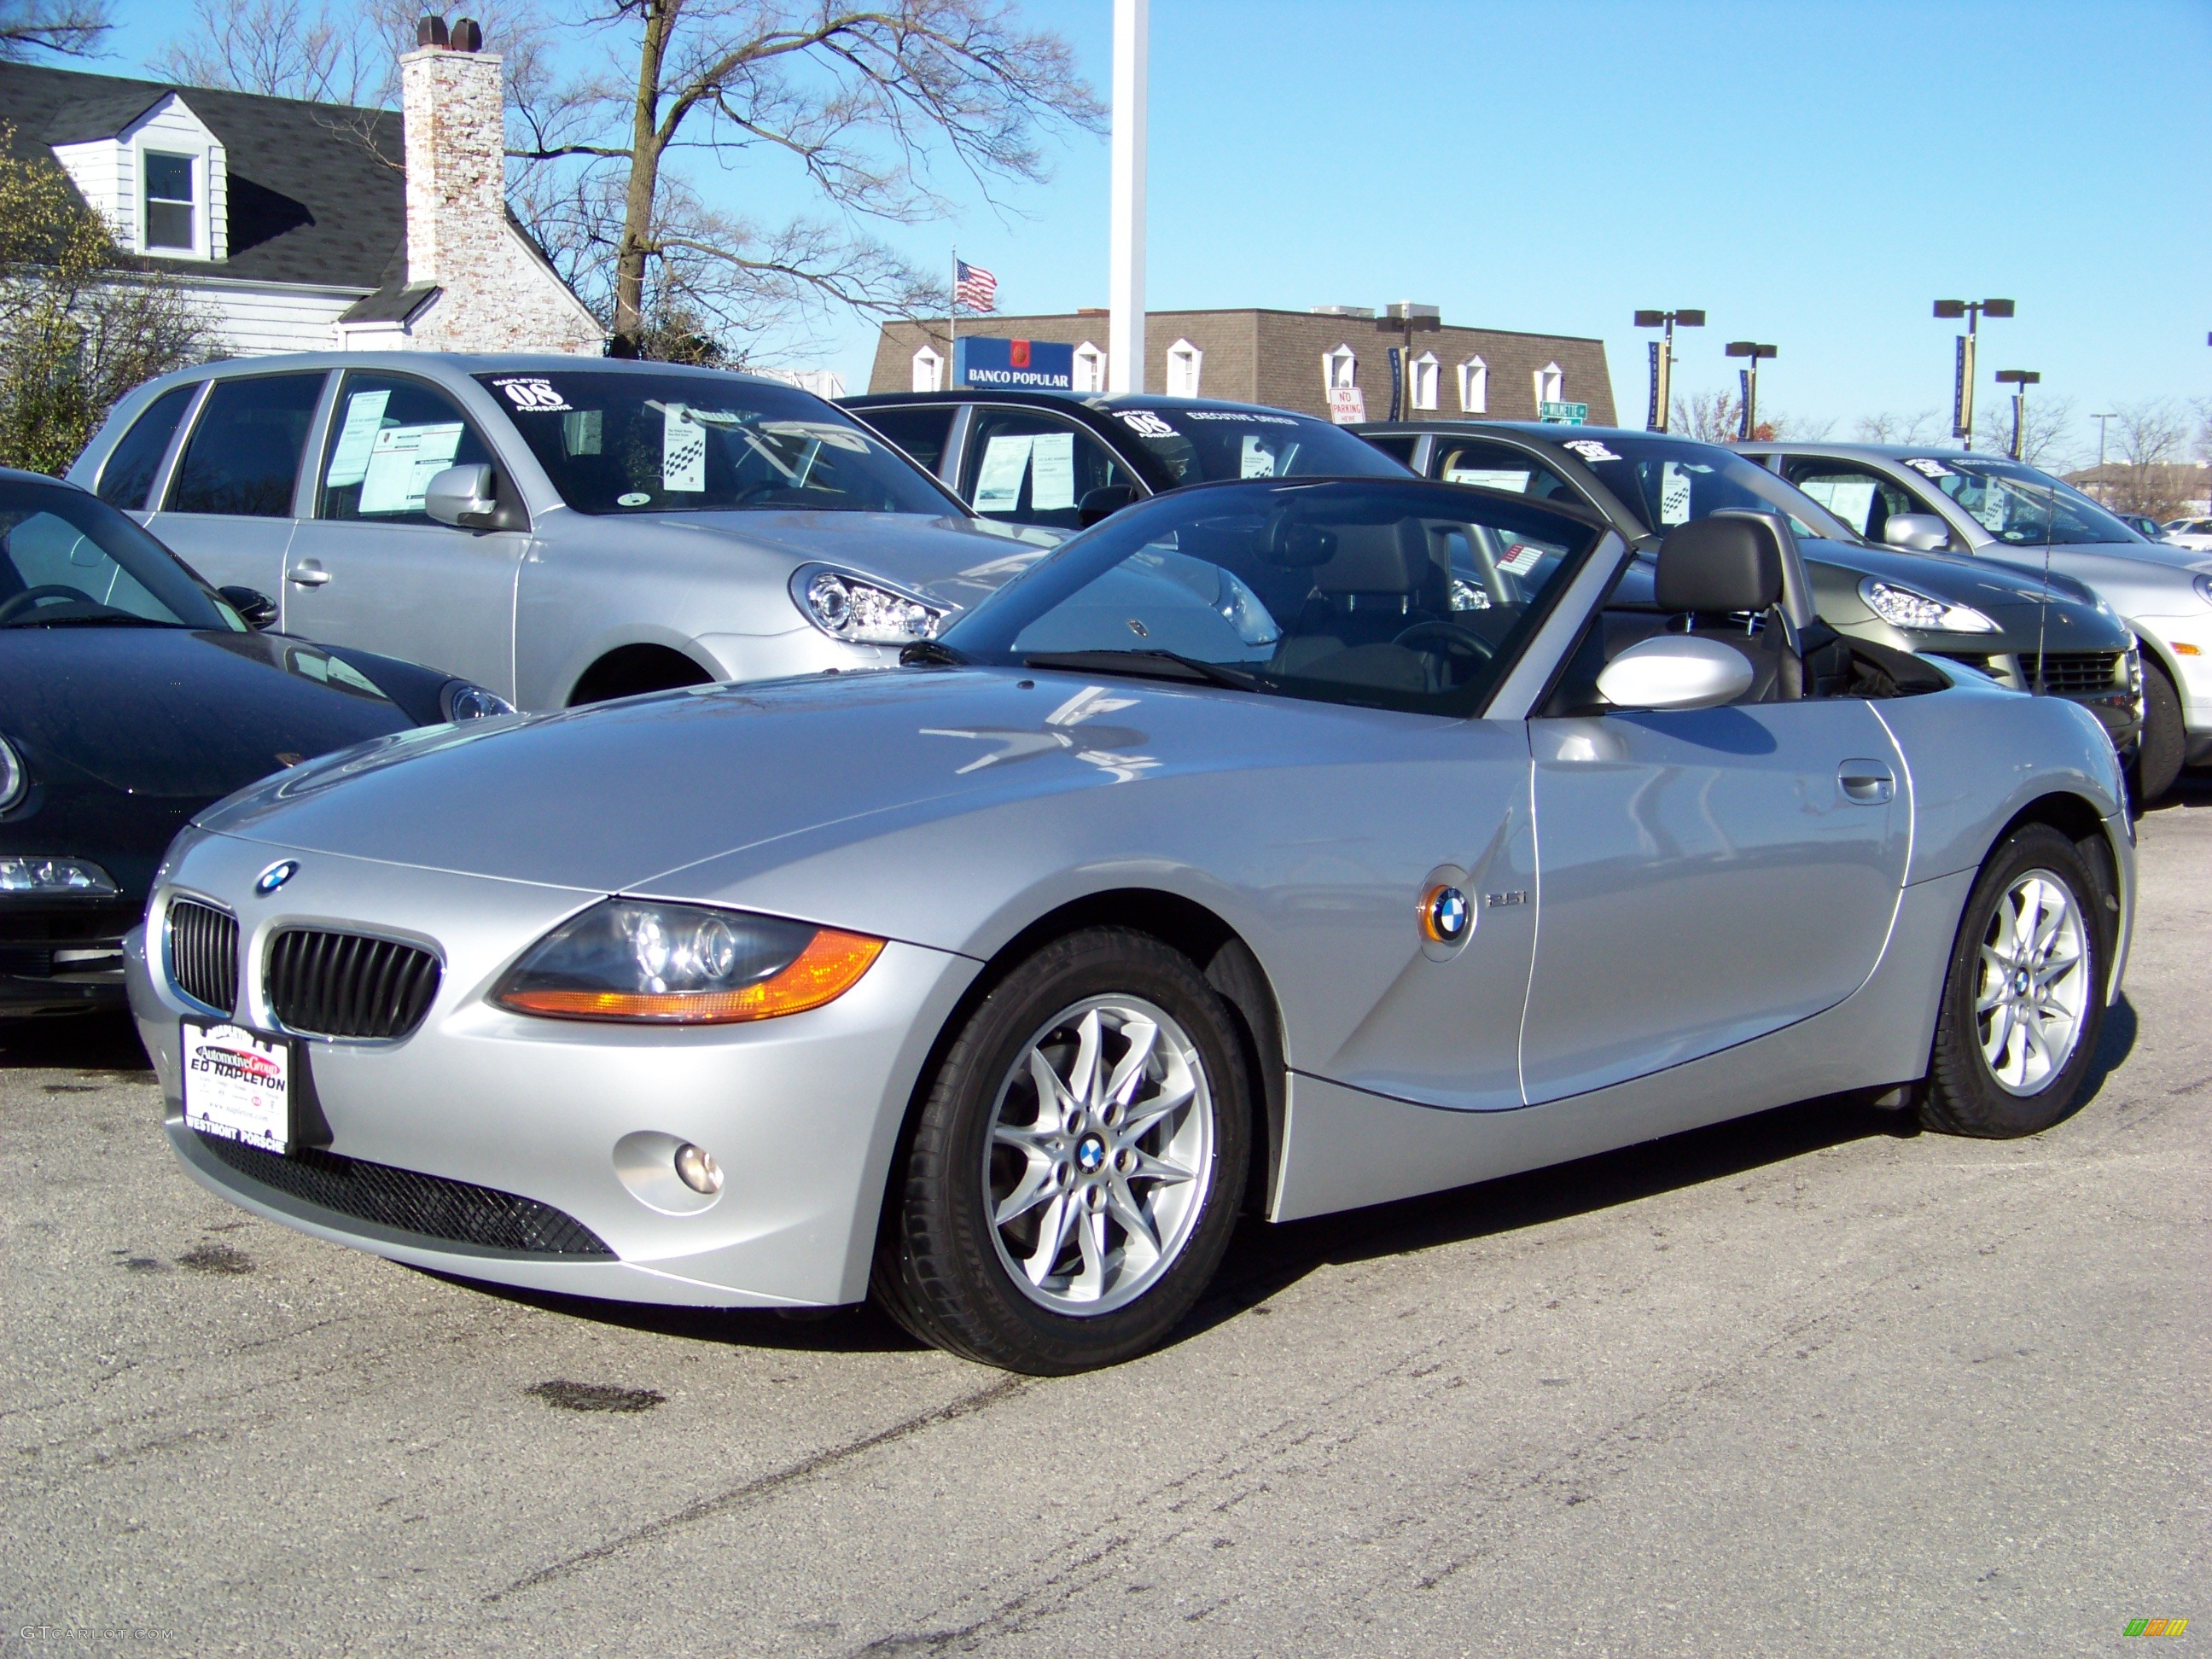 2003 Silver Bmw Z4 2 5i Roadster 786811 Photo 22